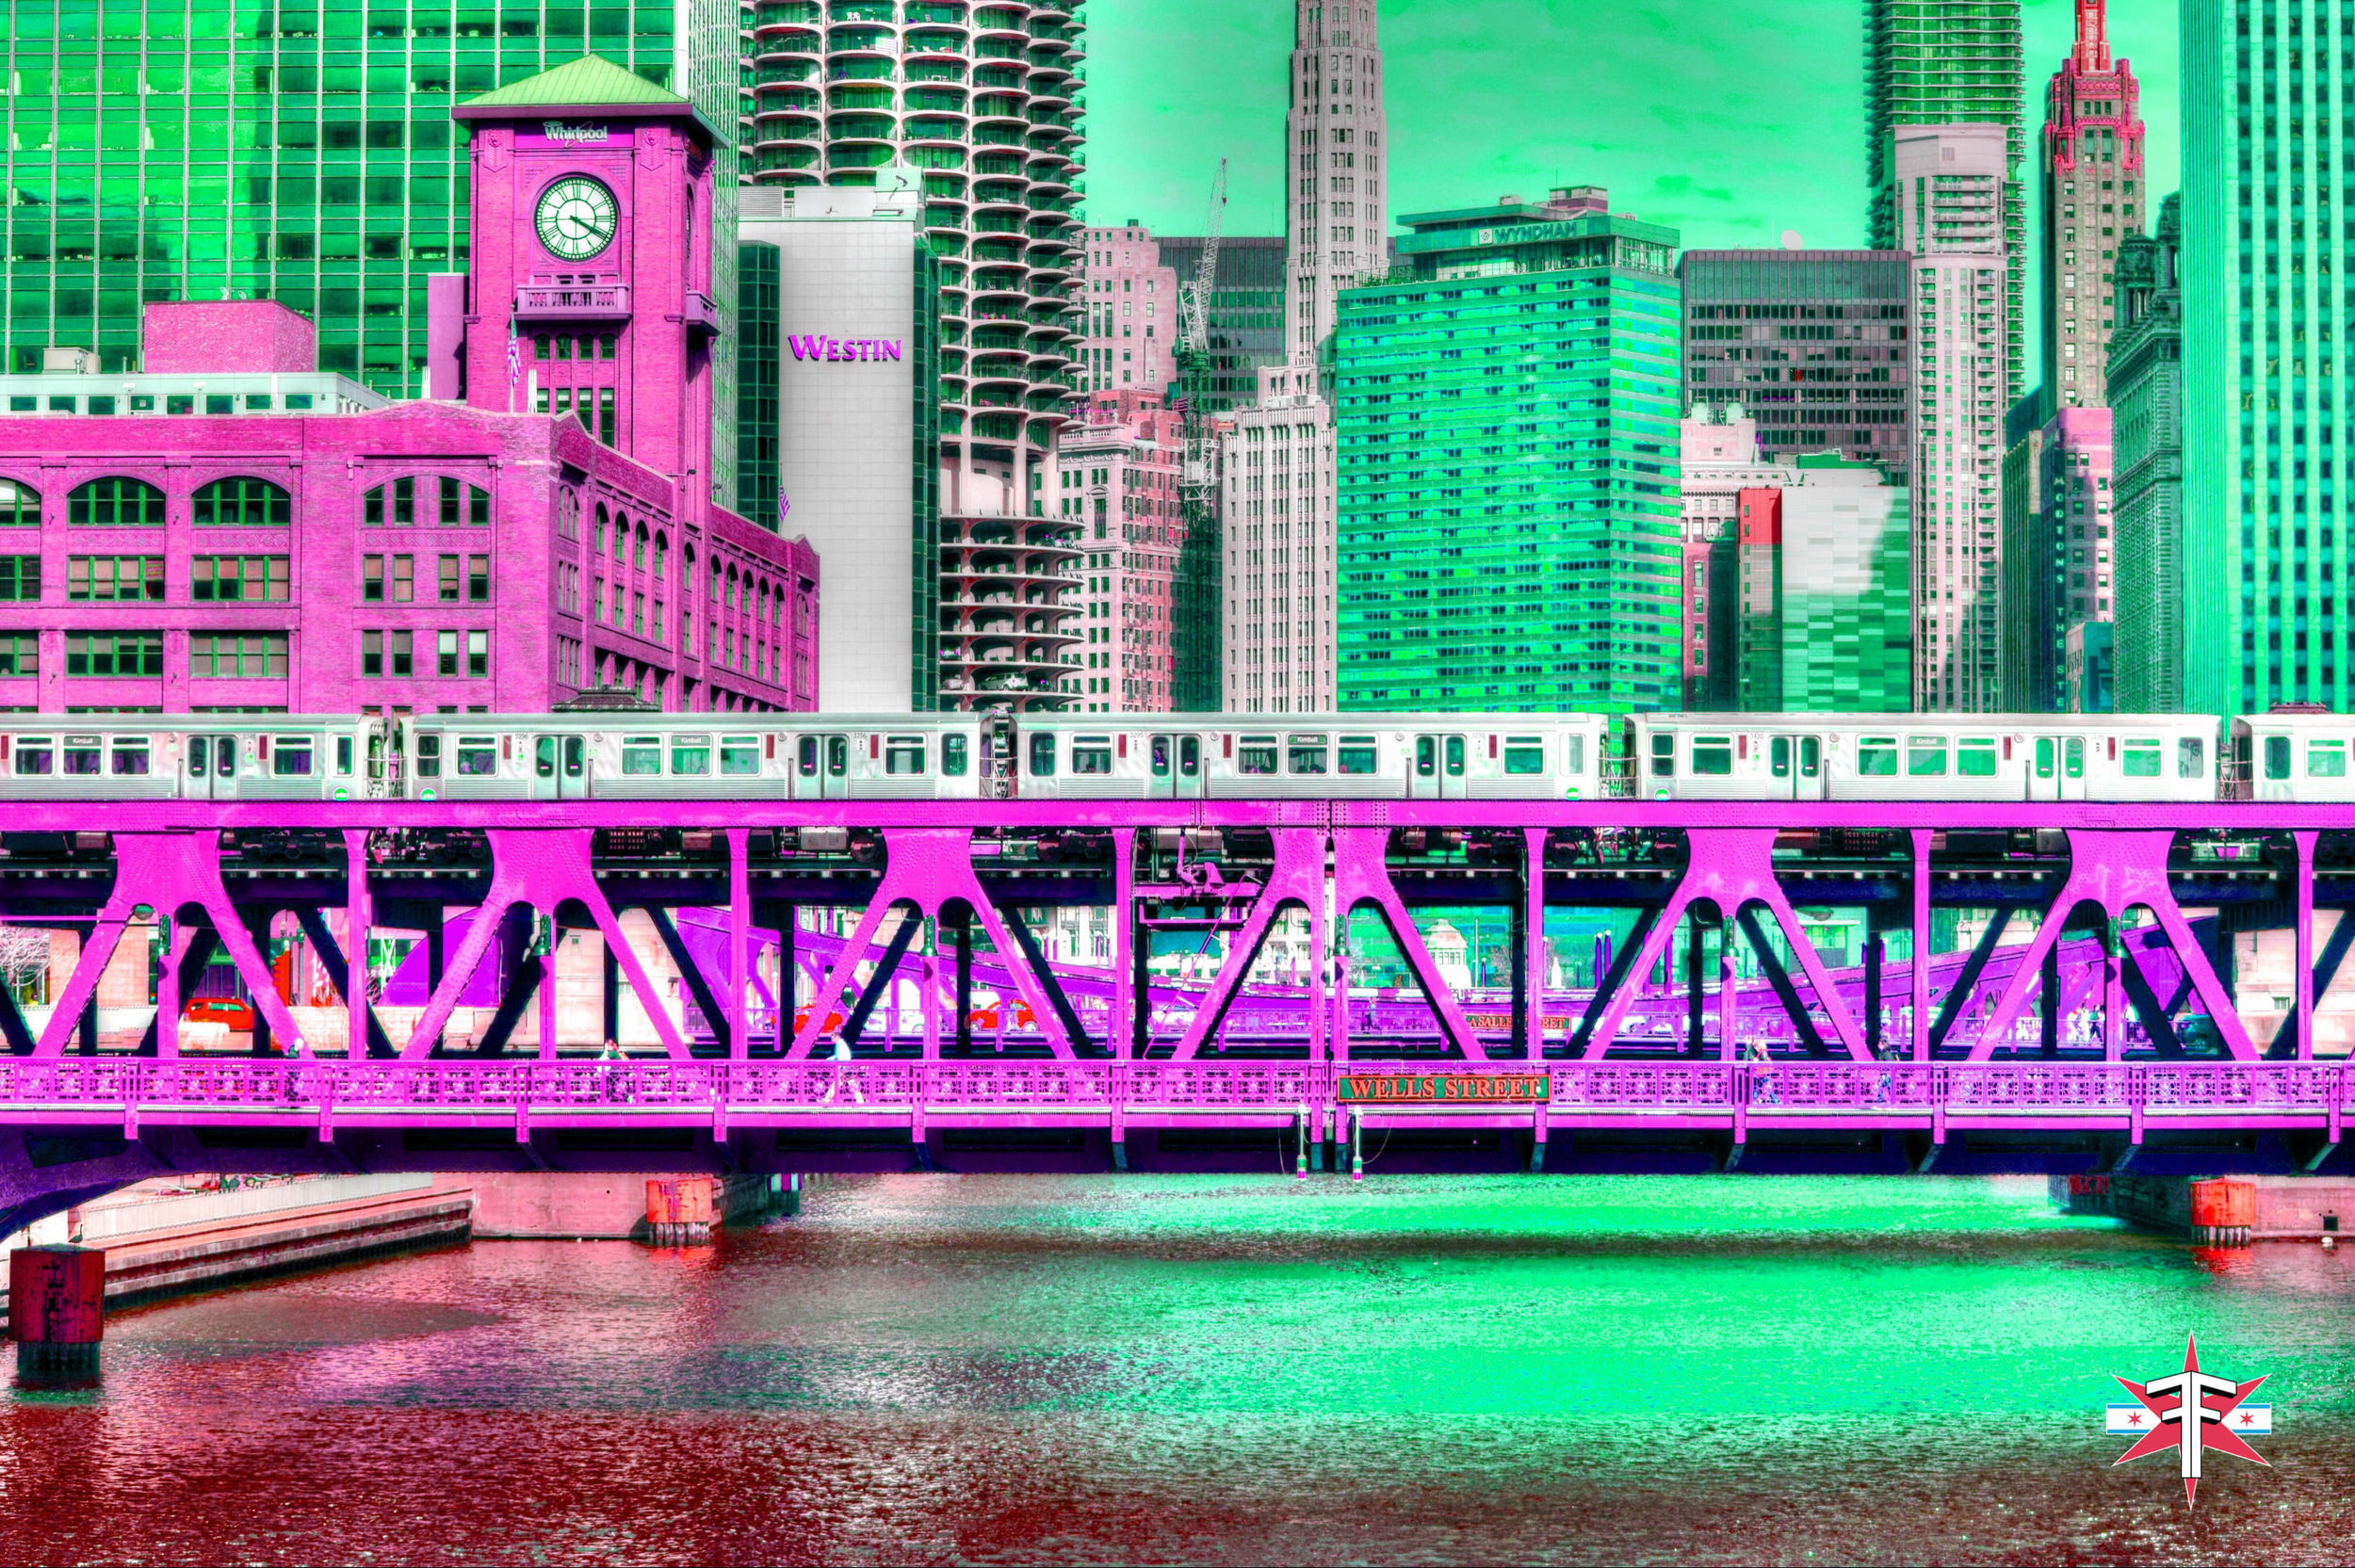 chicago art abstract eric formato photography color travel cityscape architecture saturated citycapes bright vibrant artistic-13.jpg